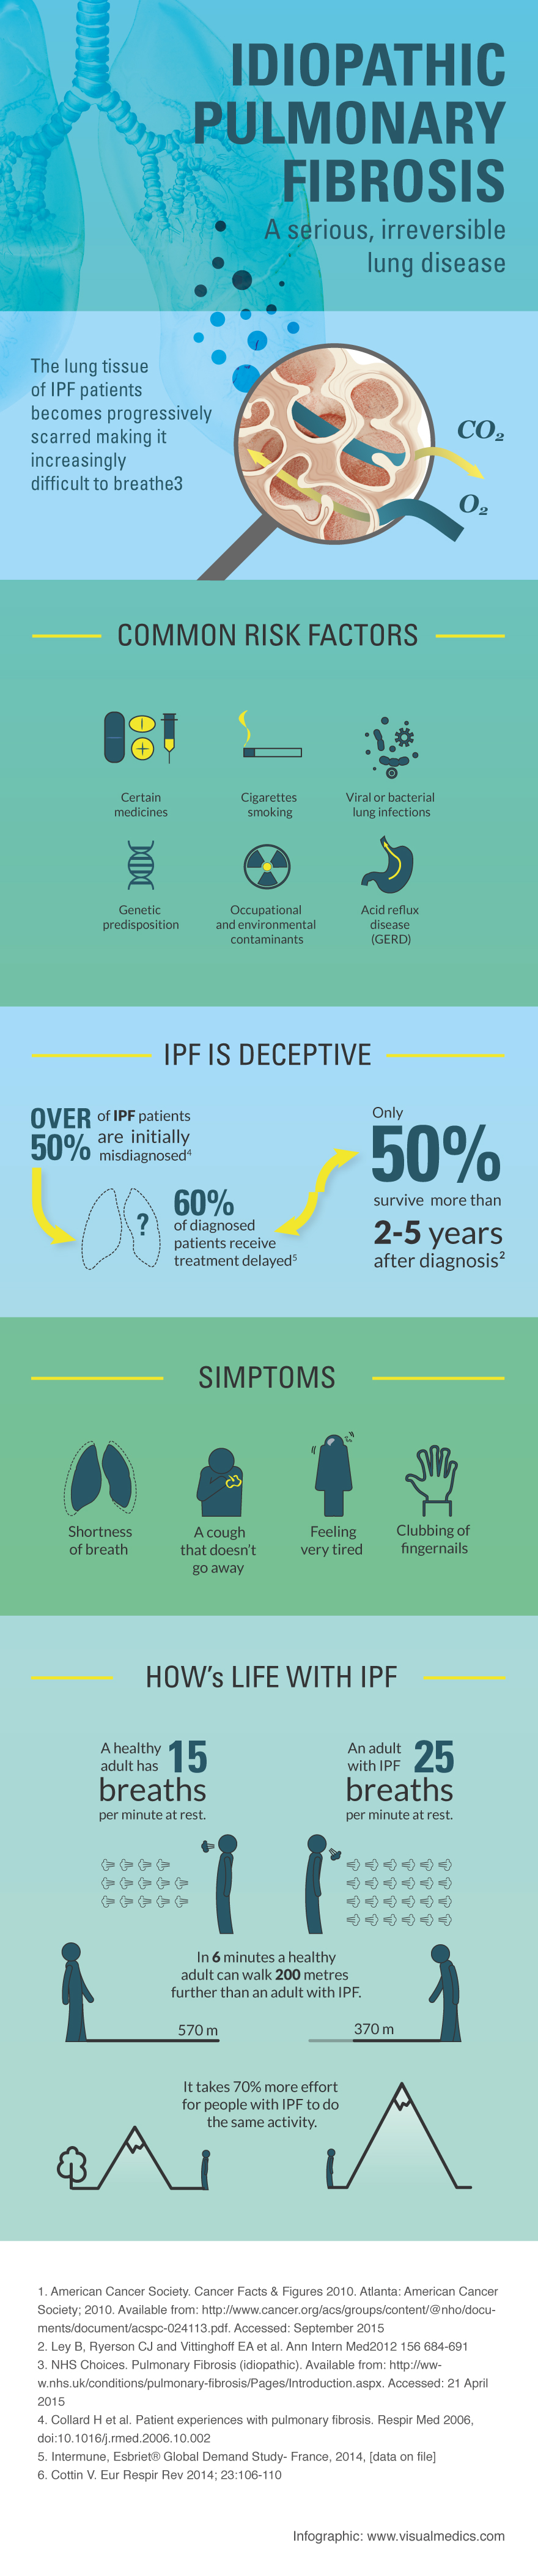 A Science Infographic on How IPF, Idiopathic pulmonary fibrosis, affects patients